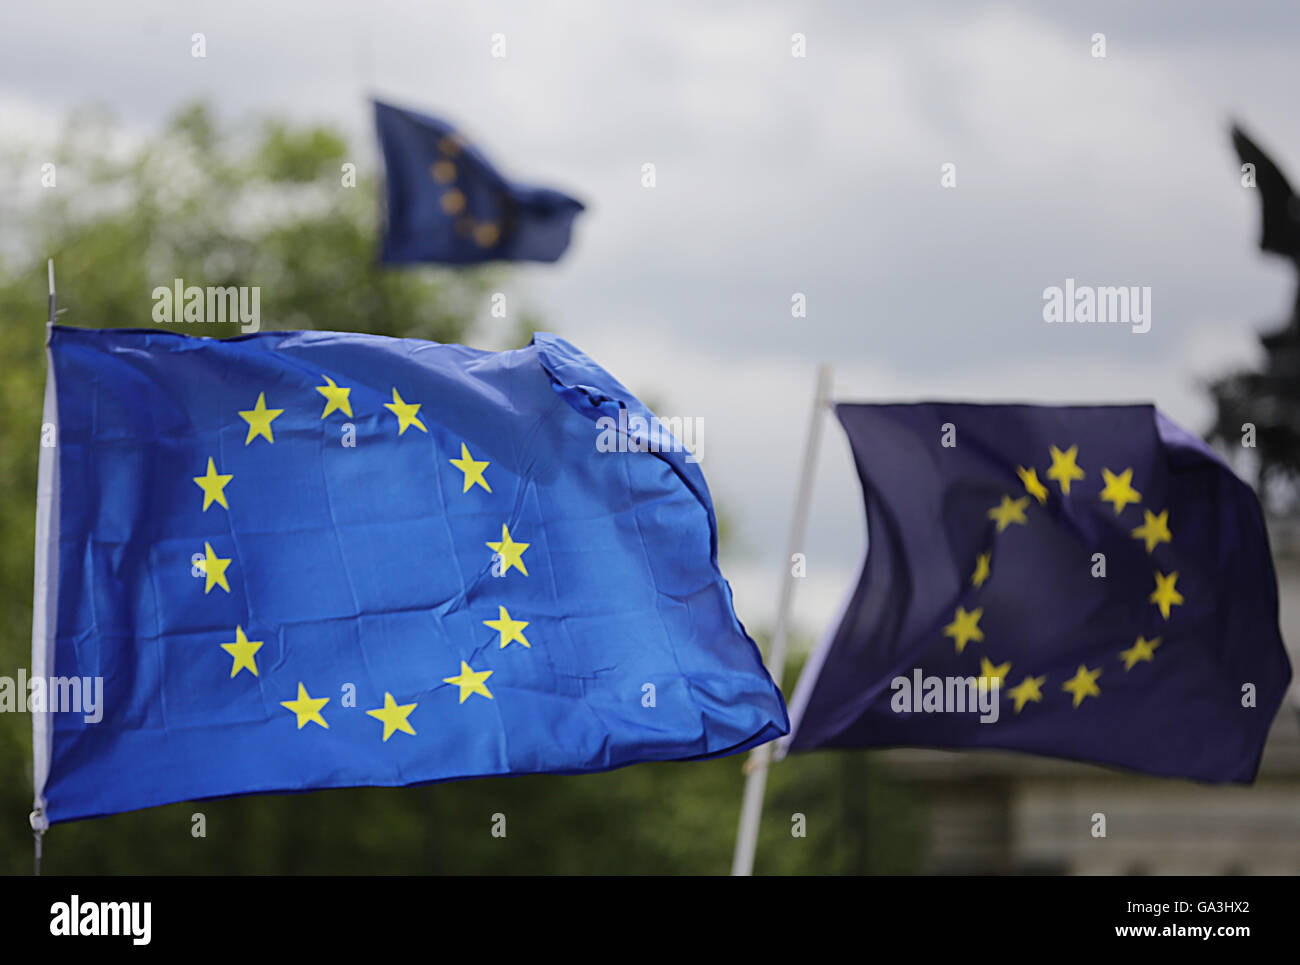 European Union flags fly above the March for Europe rally from Park Lane to Parliament Square in London to show - Stock Image